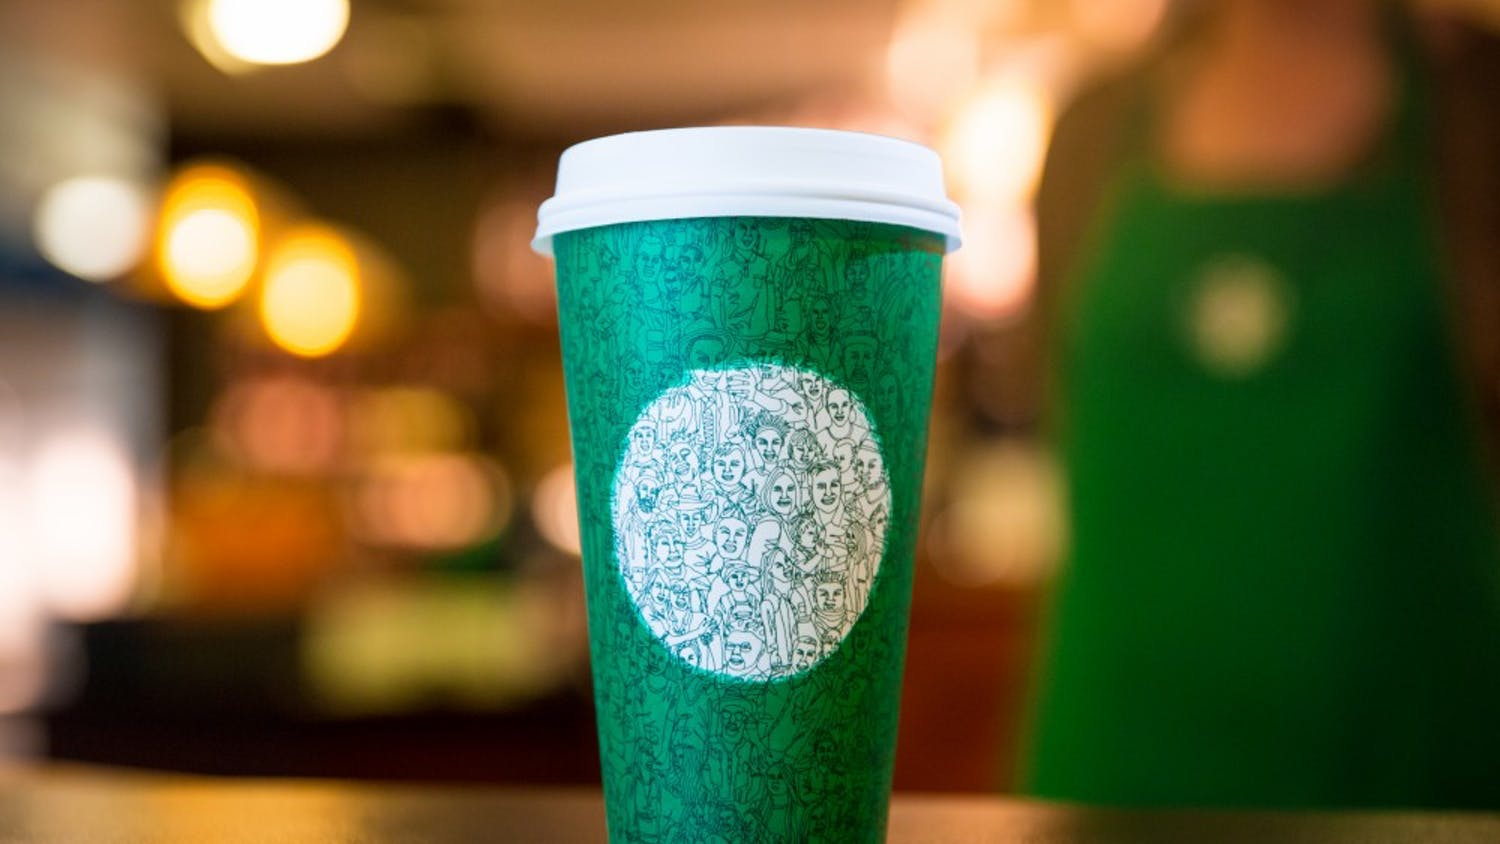 The illustration on the green Starbucks cup was drawn in one continuous stroke.